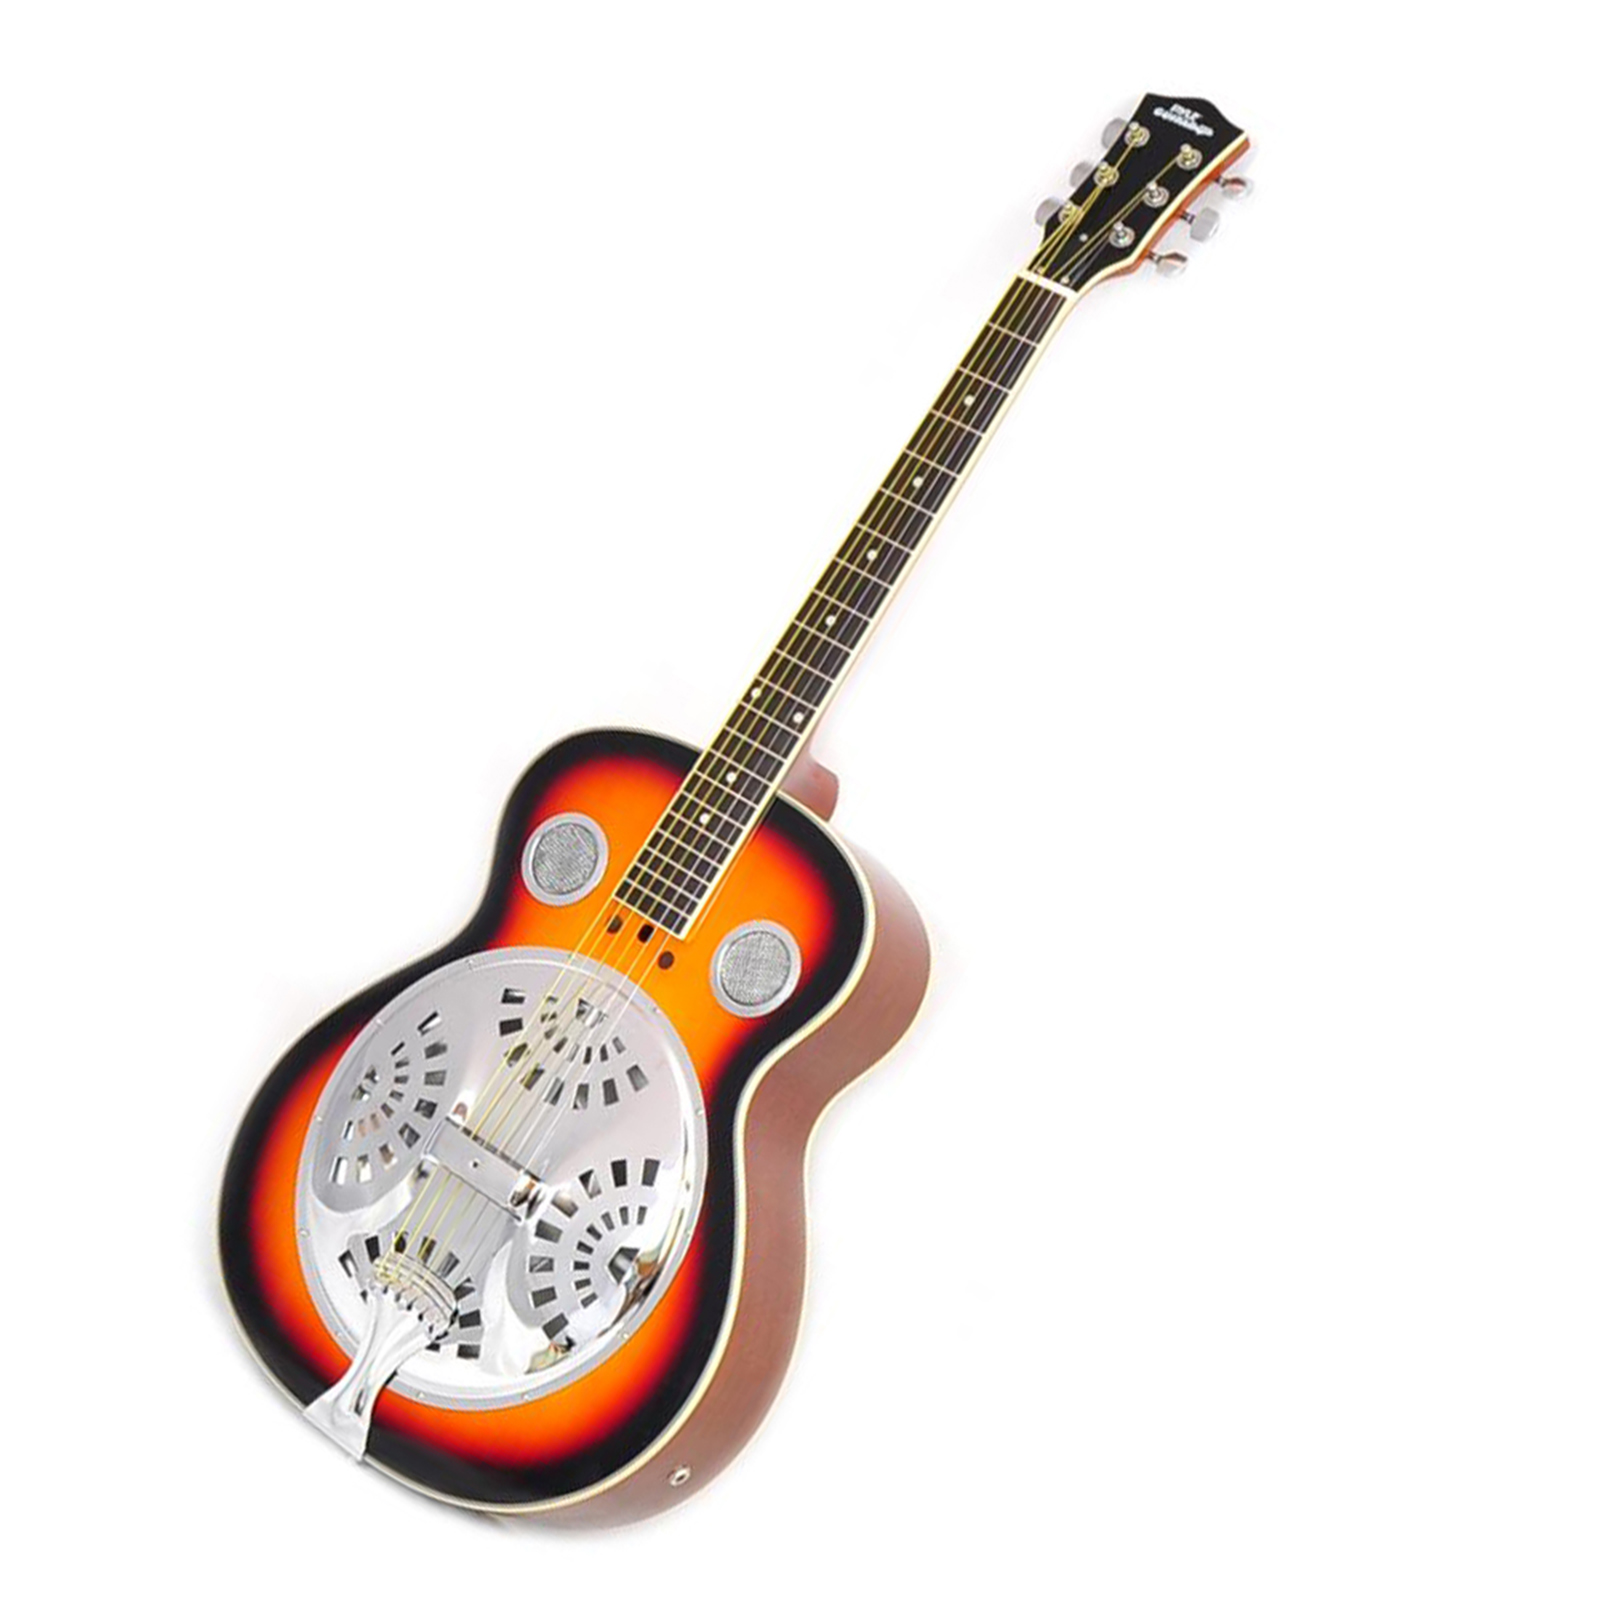 6-String Acoustic Resonator Guitar, Full Scale Resophonic, Accessory Kit Included by Pyle Pro